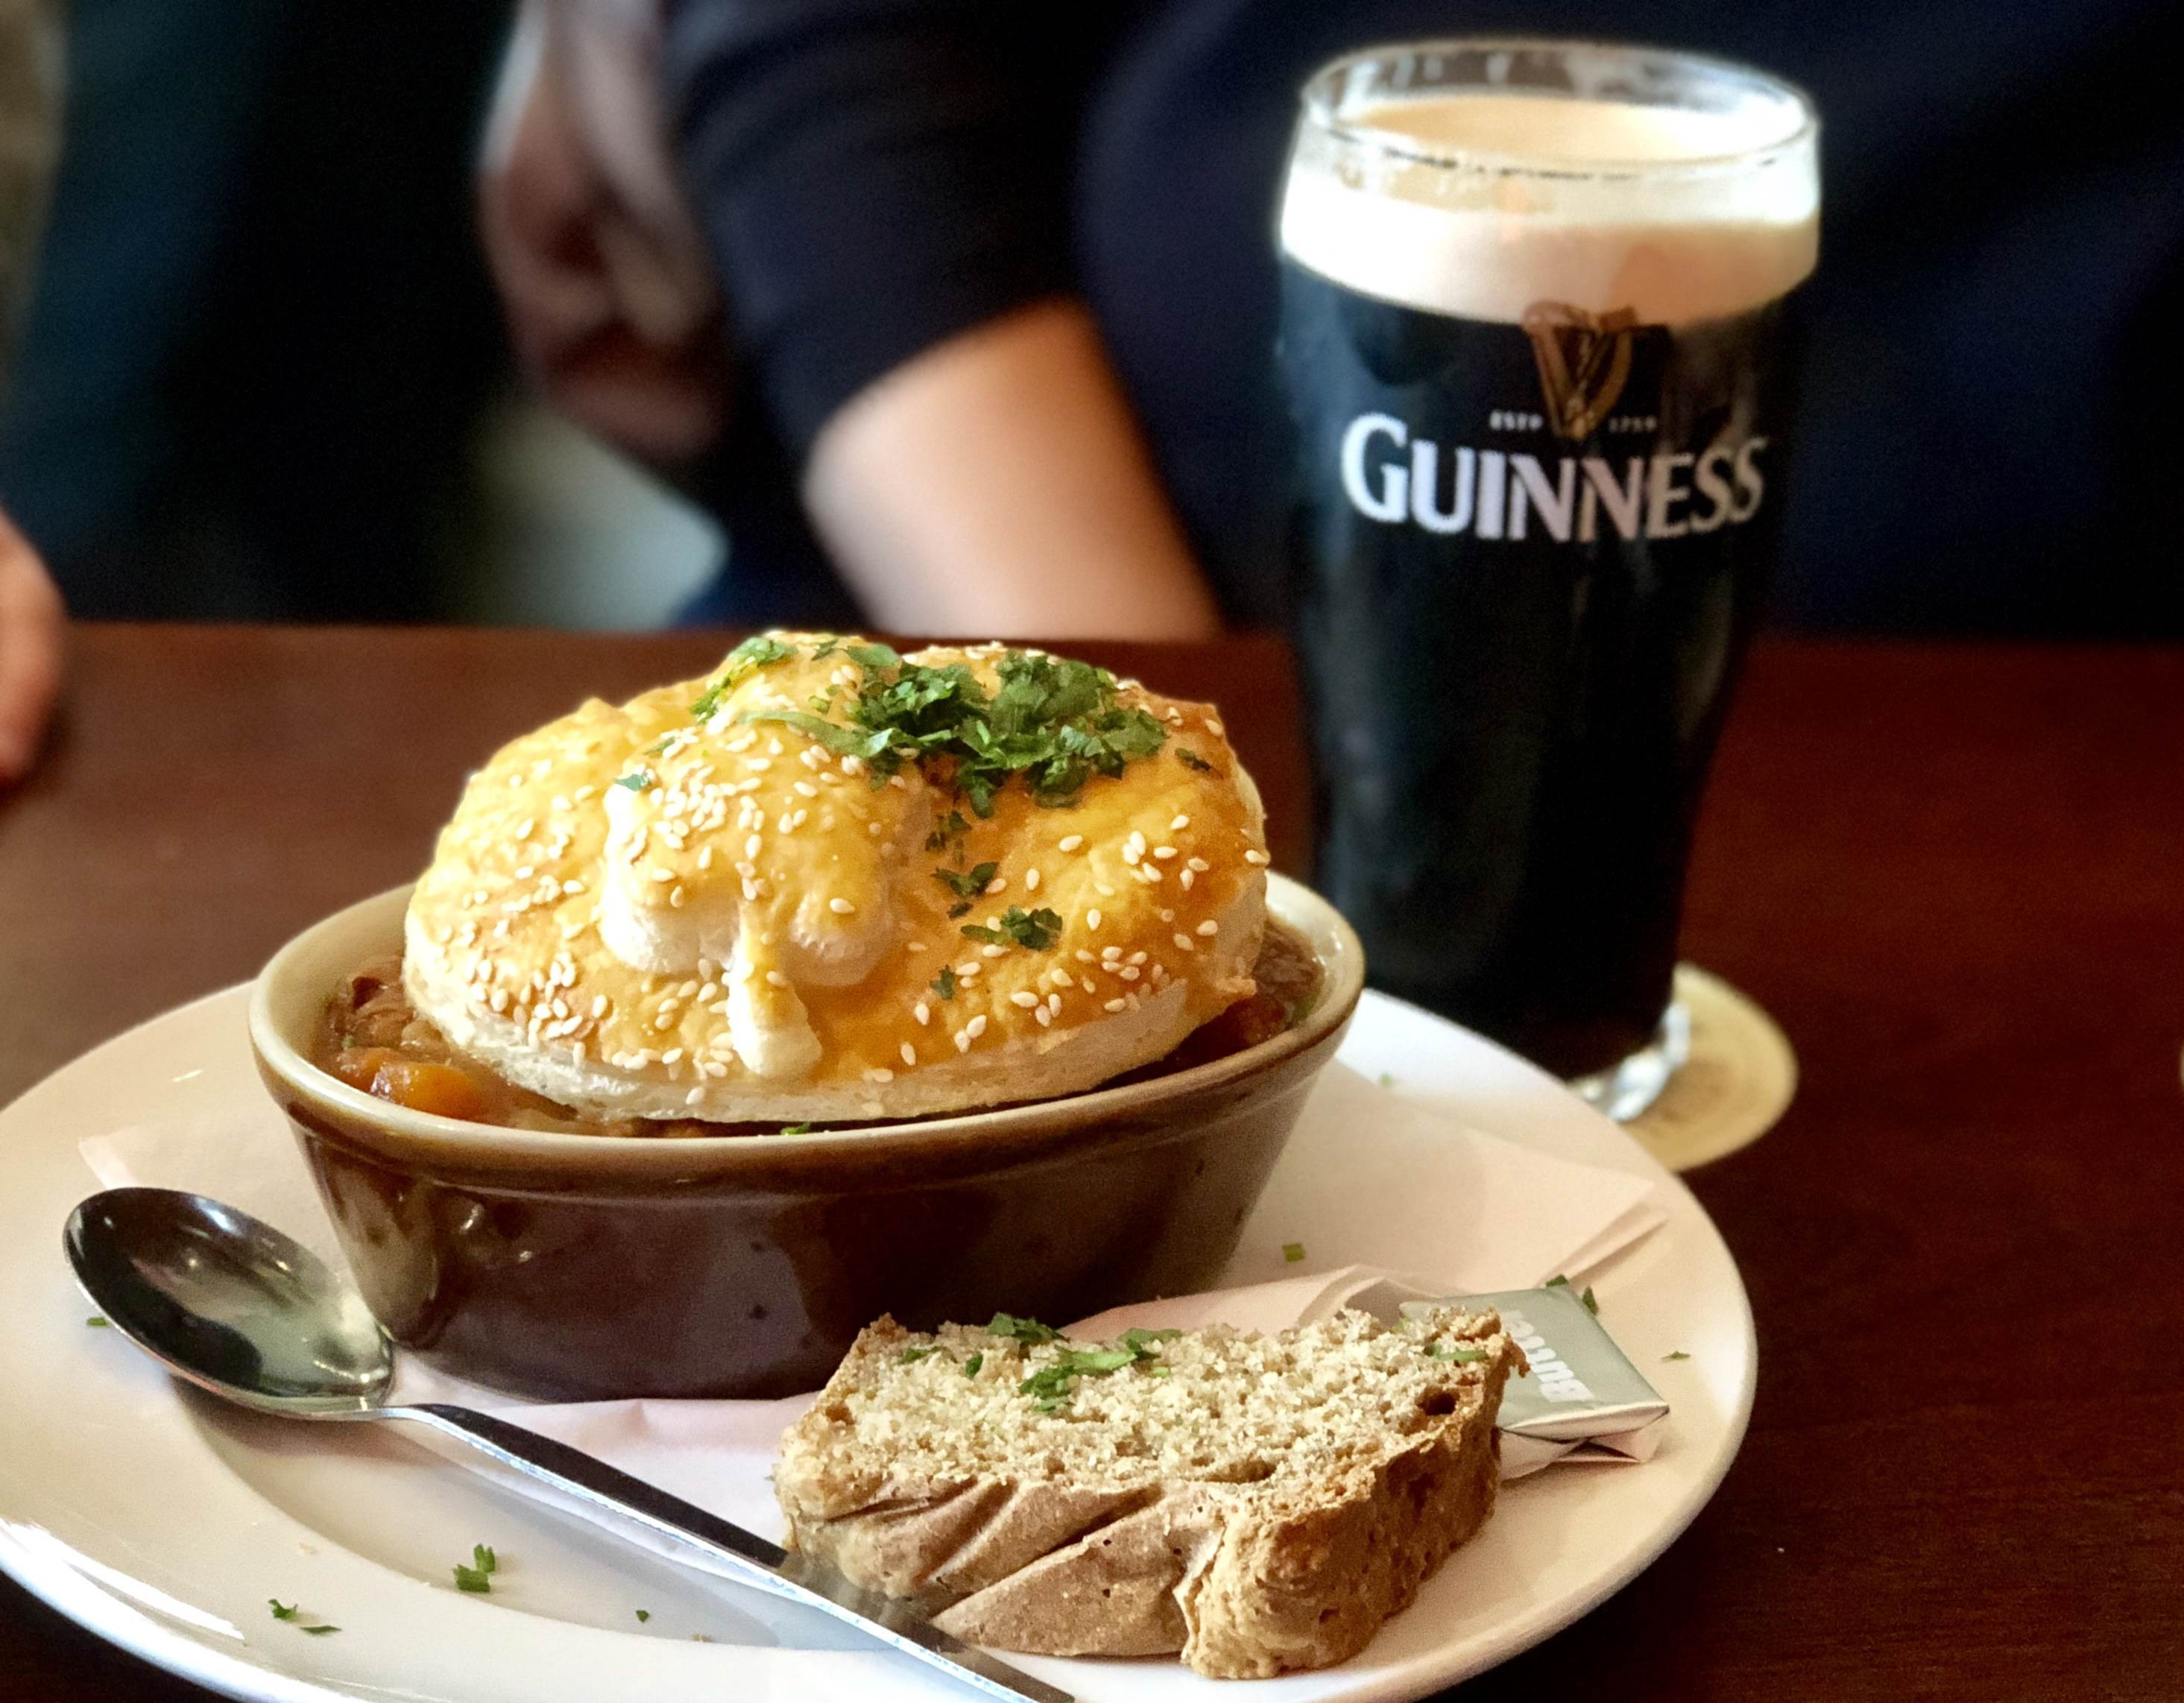 Guinness pie and Guinness